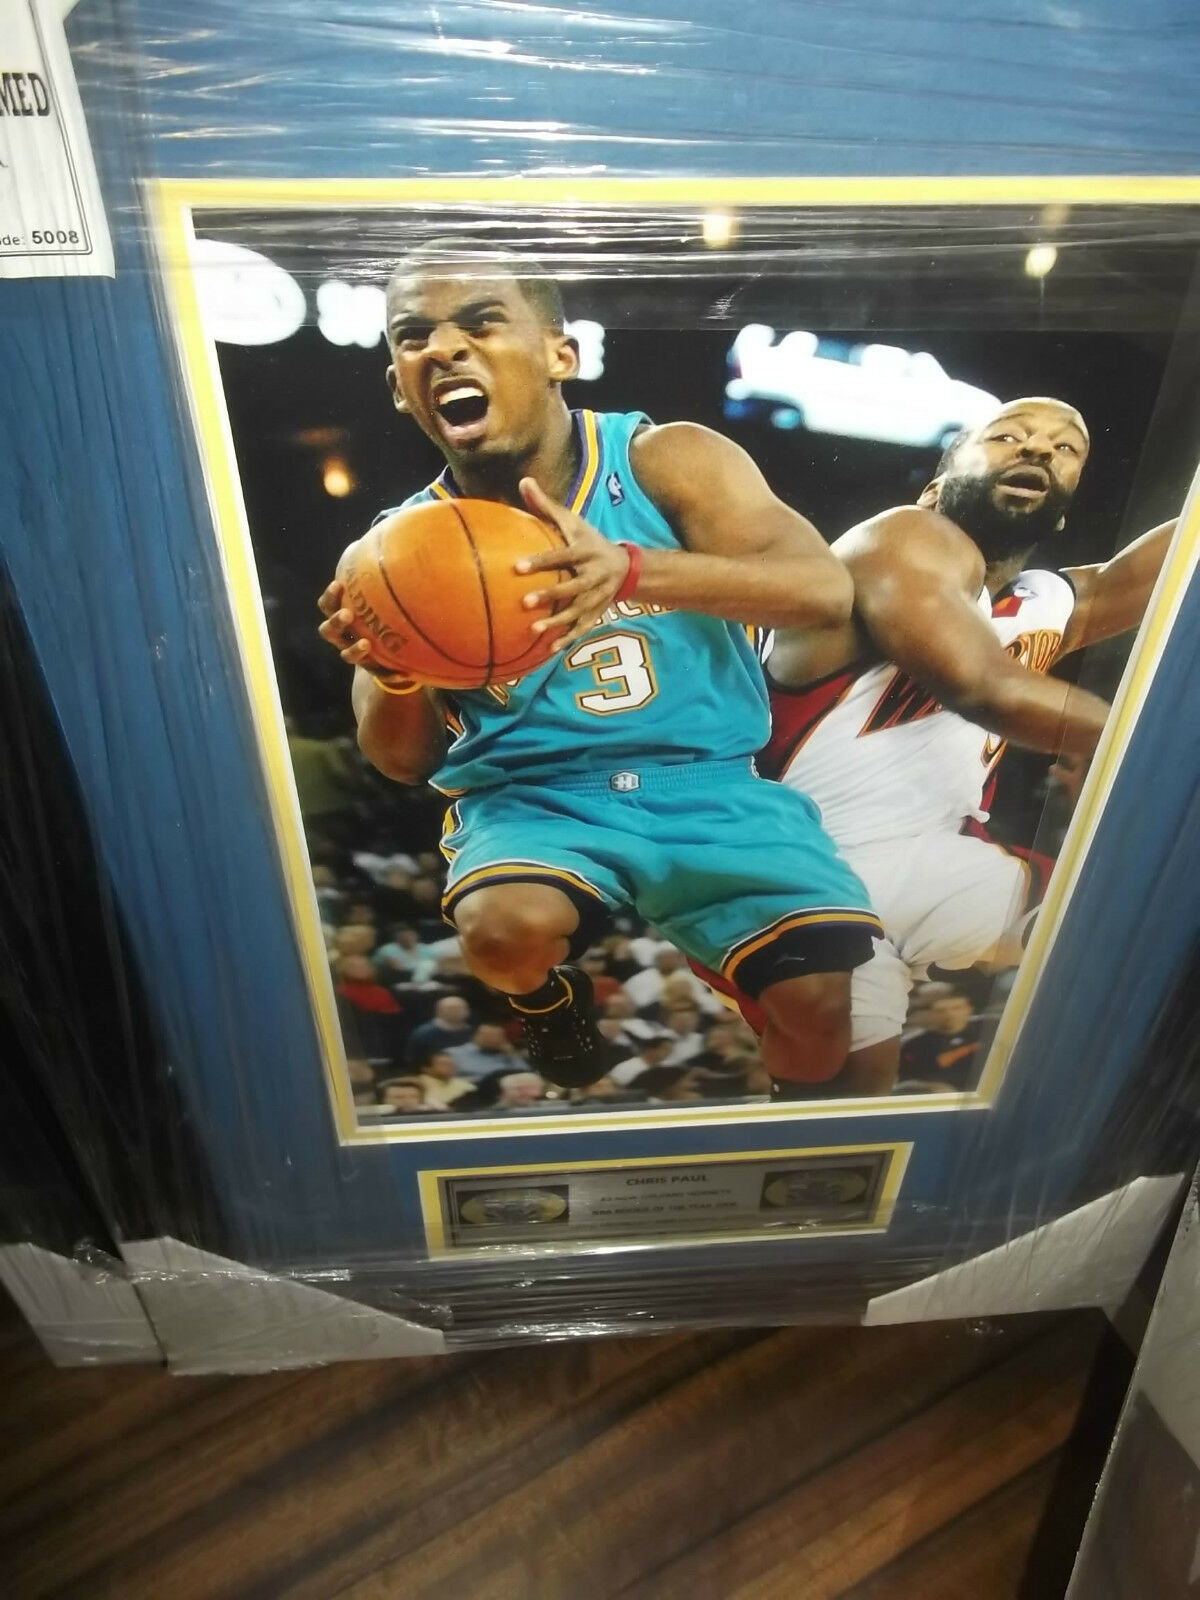 CHRIS PAUL UNSIGNED 8x12 PHOTOGRAPH FRAMED - BRAND NEW